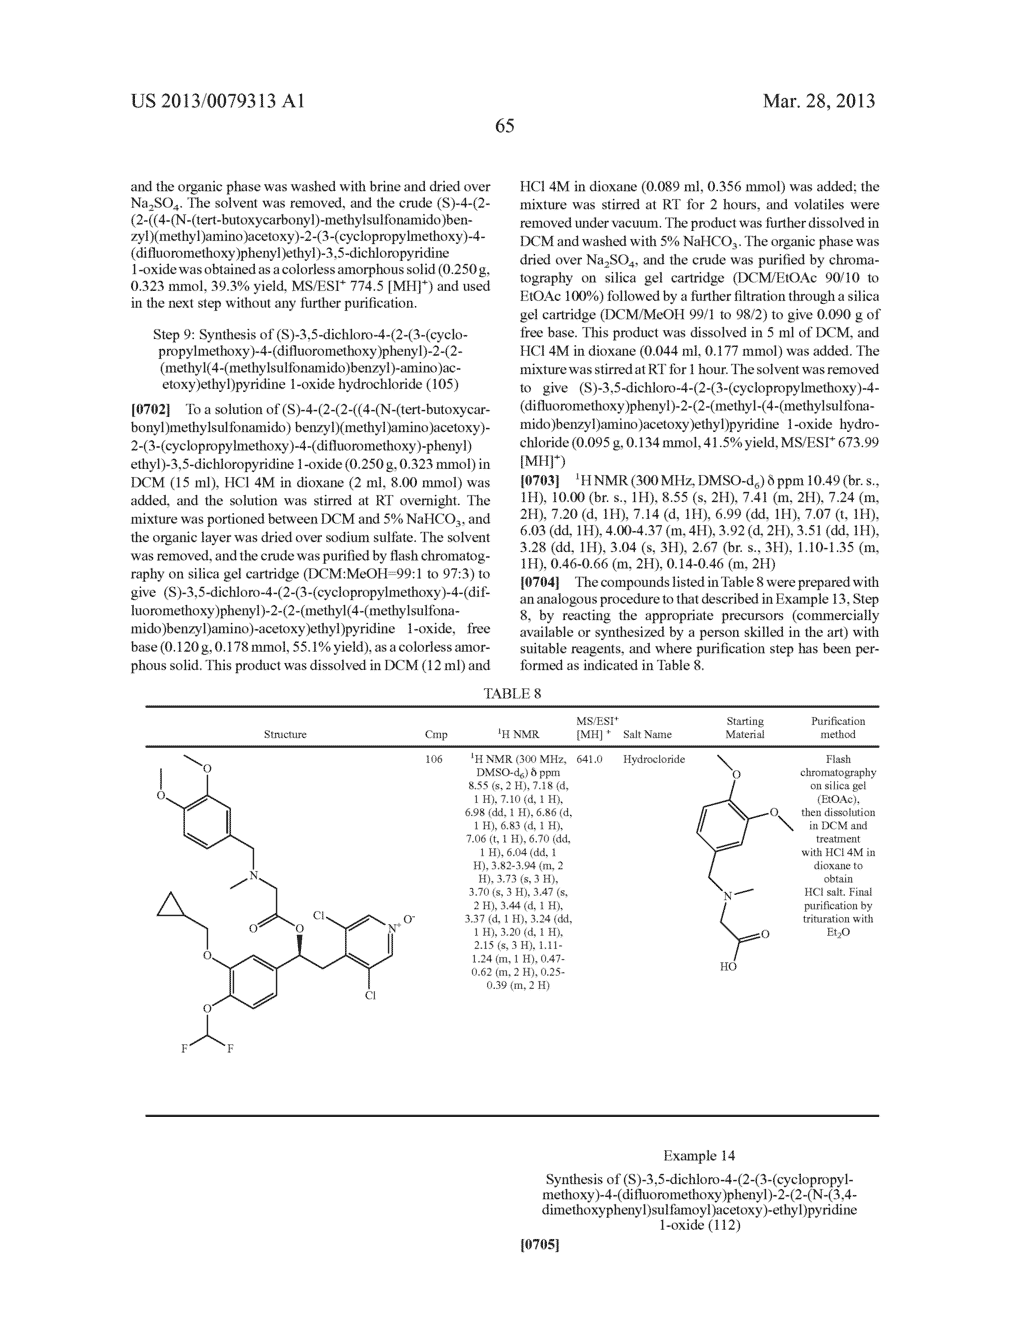 DERIVATIVES OF 1-PHENYL-2-PYRIDINYL ALKYL ALCOHOLS AS PHOSPHODIESTERASE     INHIBITORS - diagram, schematic, and image 66